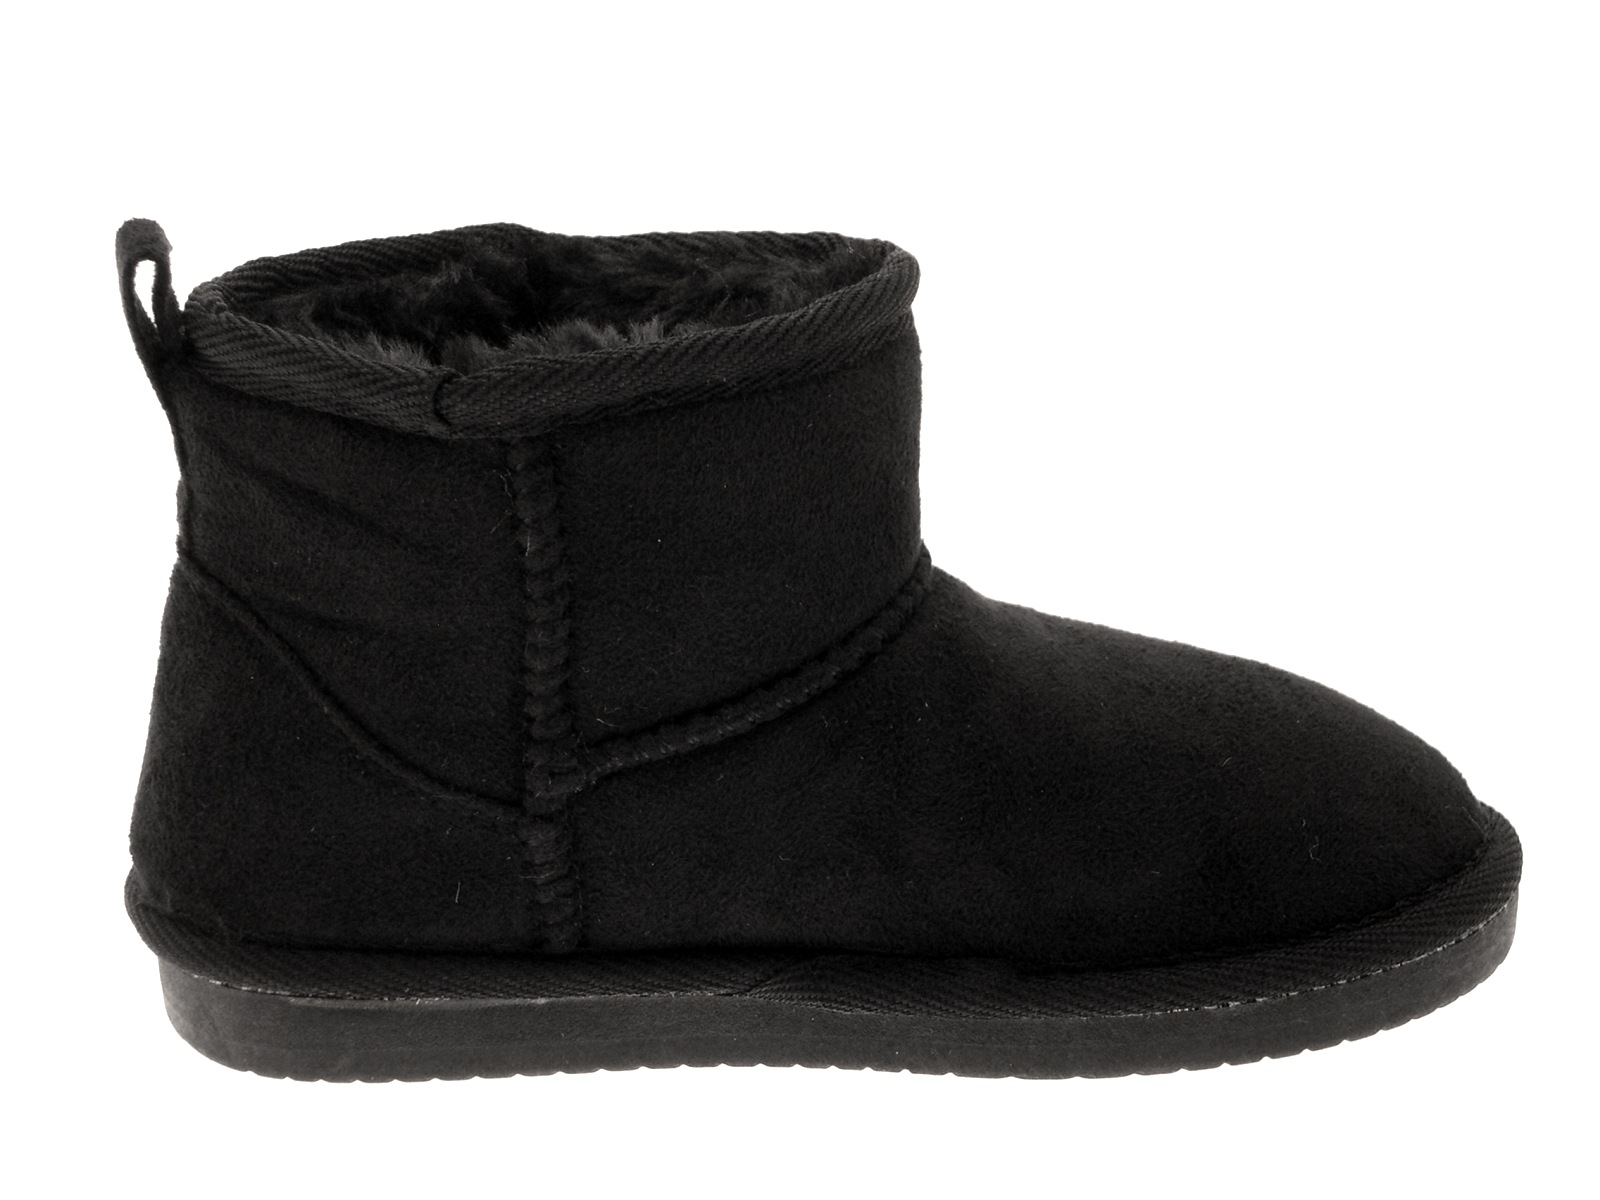 Girls Faux Fur Snugg Ankle Boots Kids Classic Winter Warm Low Heel Lined Shoes